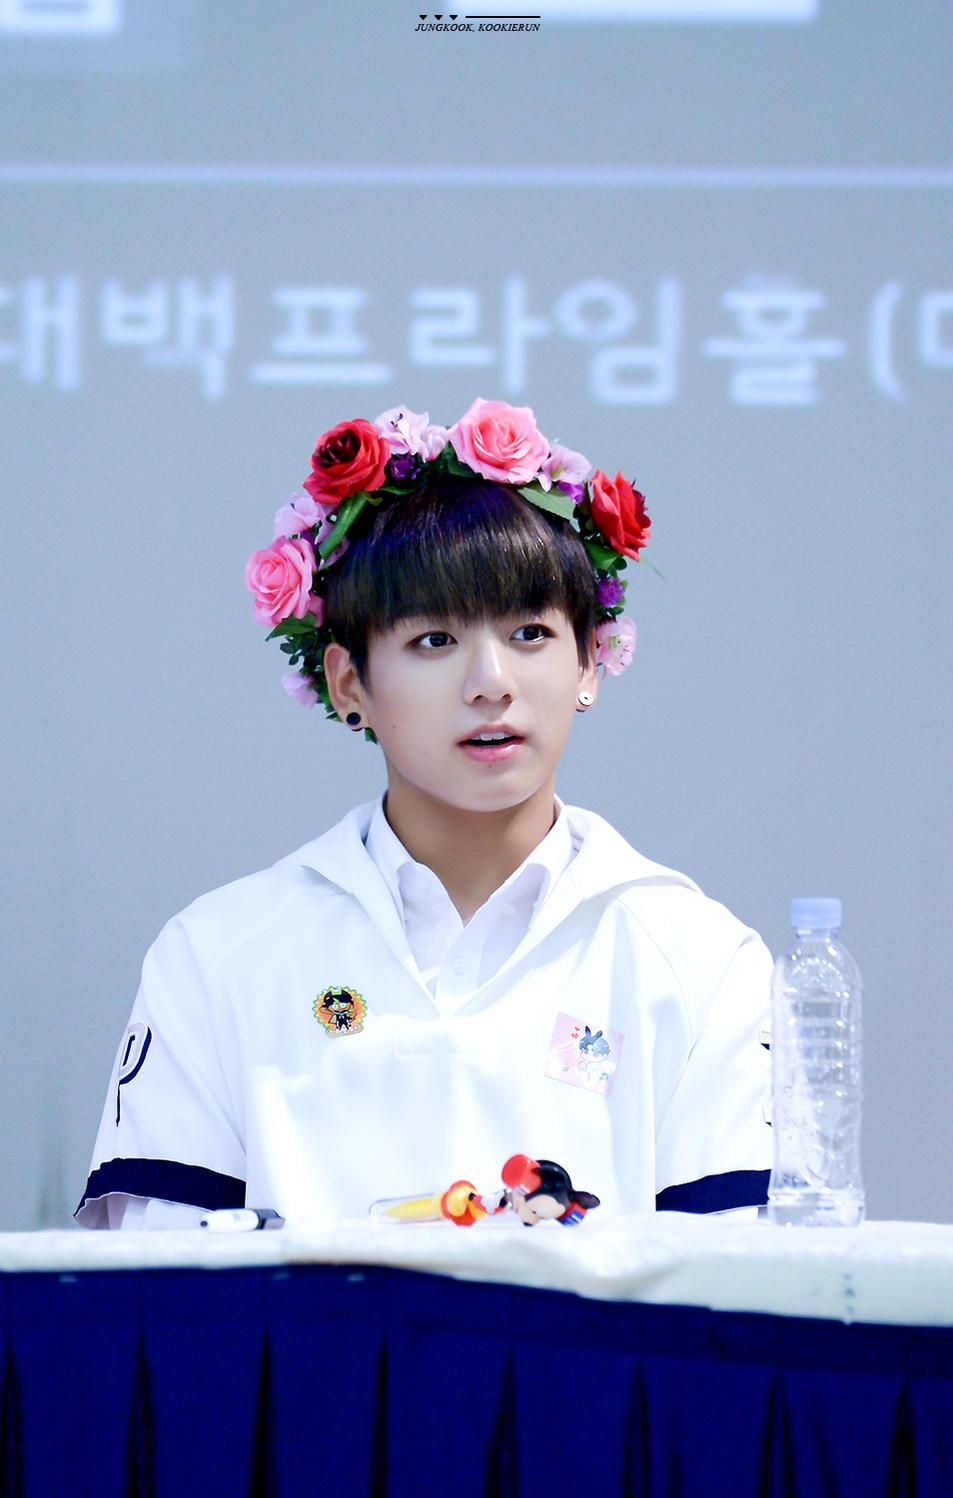 JONGKOOK BTS FLOWER CROWNE | TWITTER DOWNLOAD | Pinterest